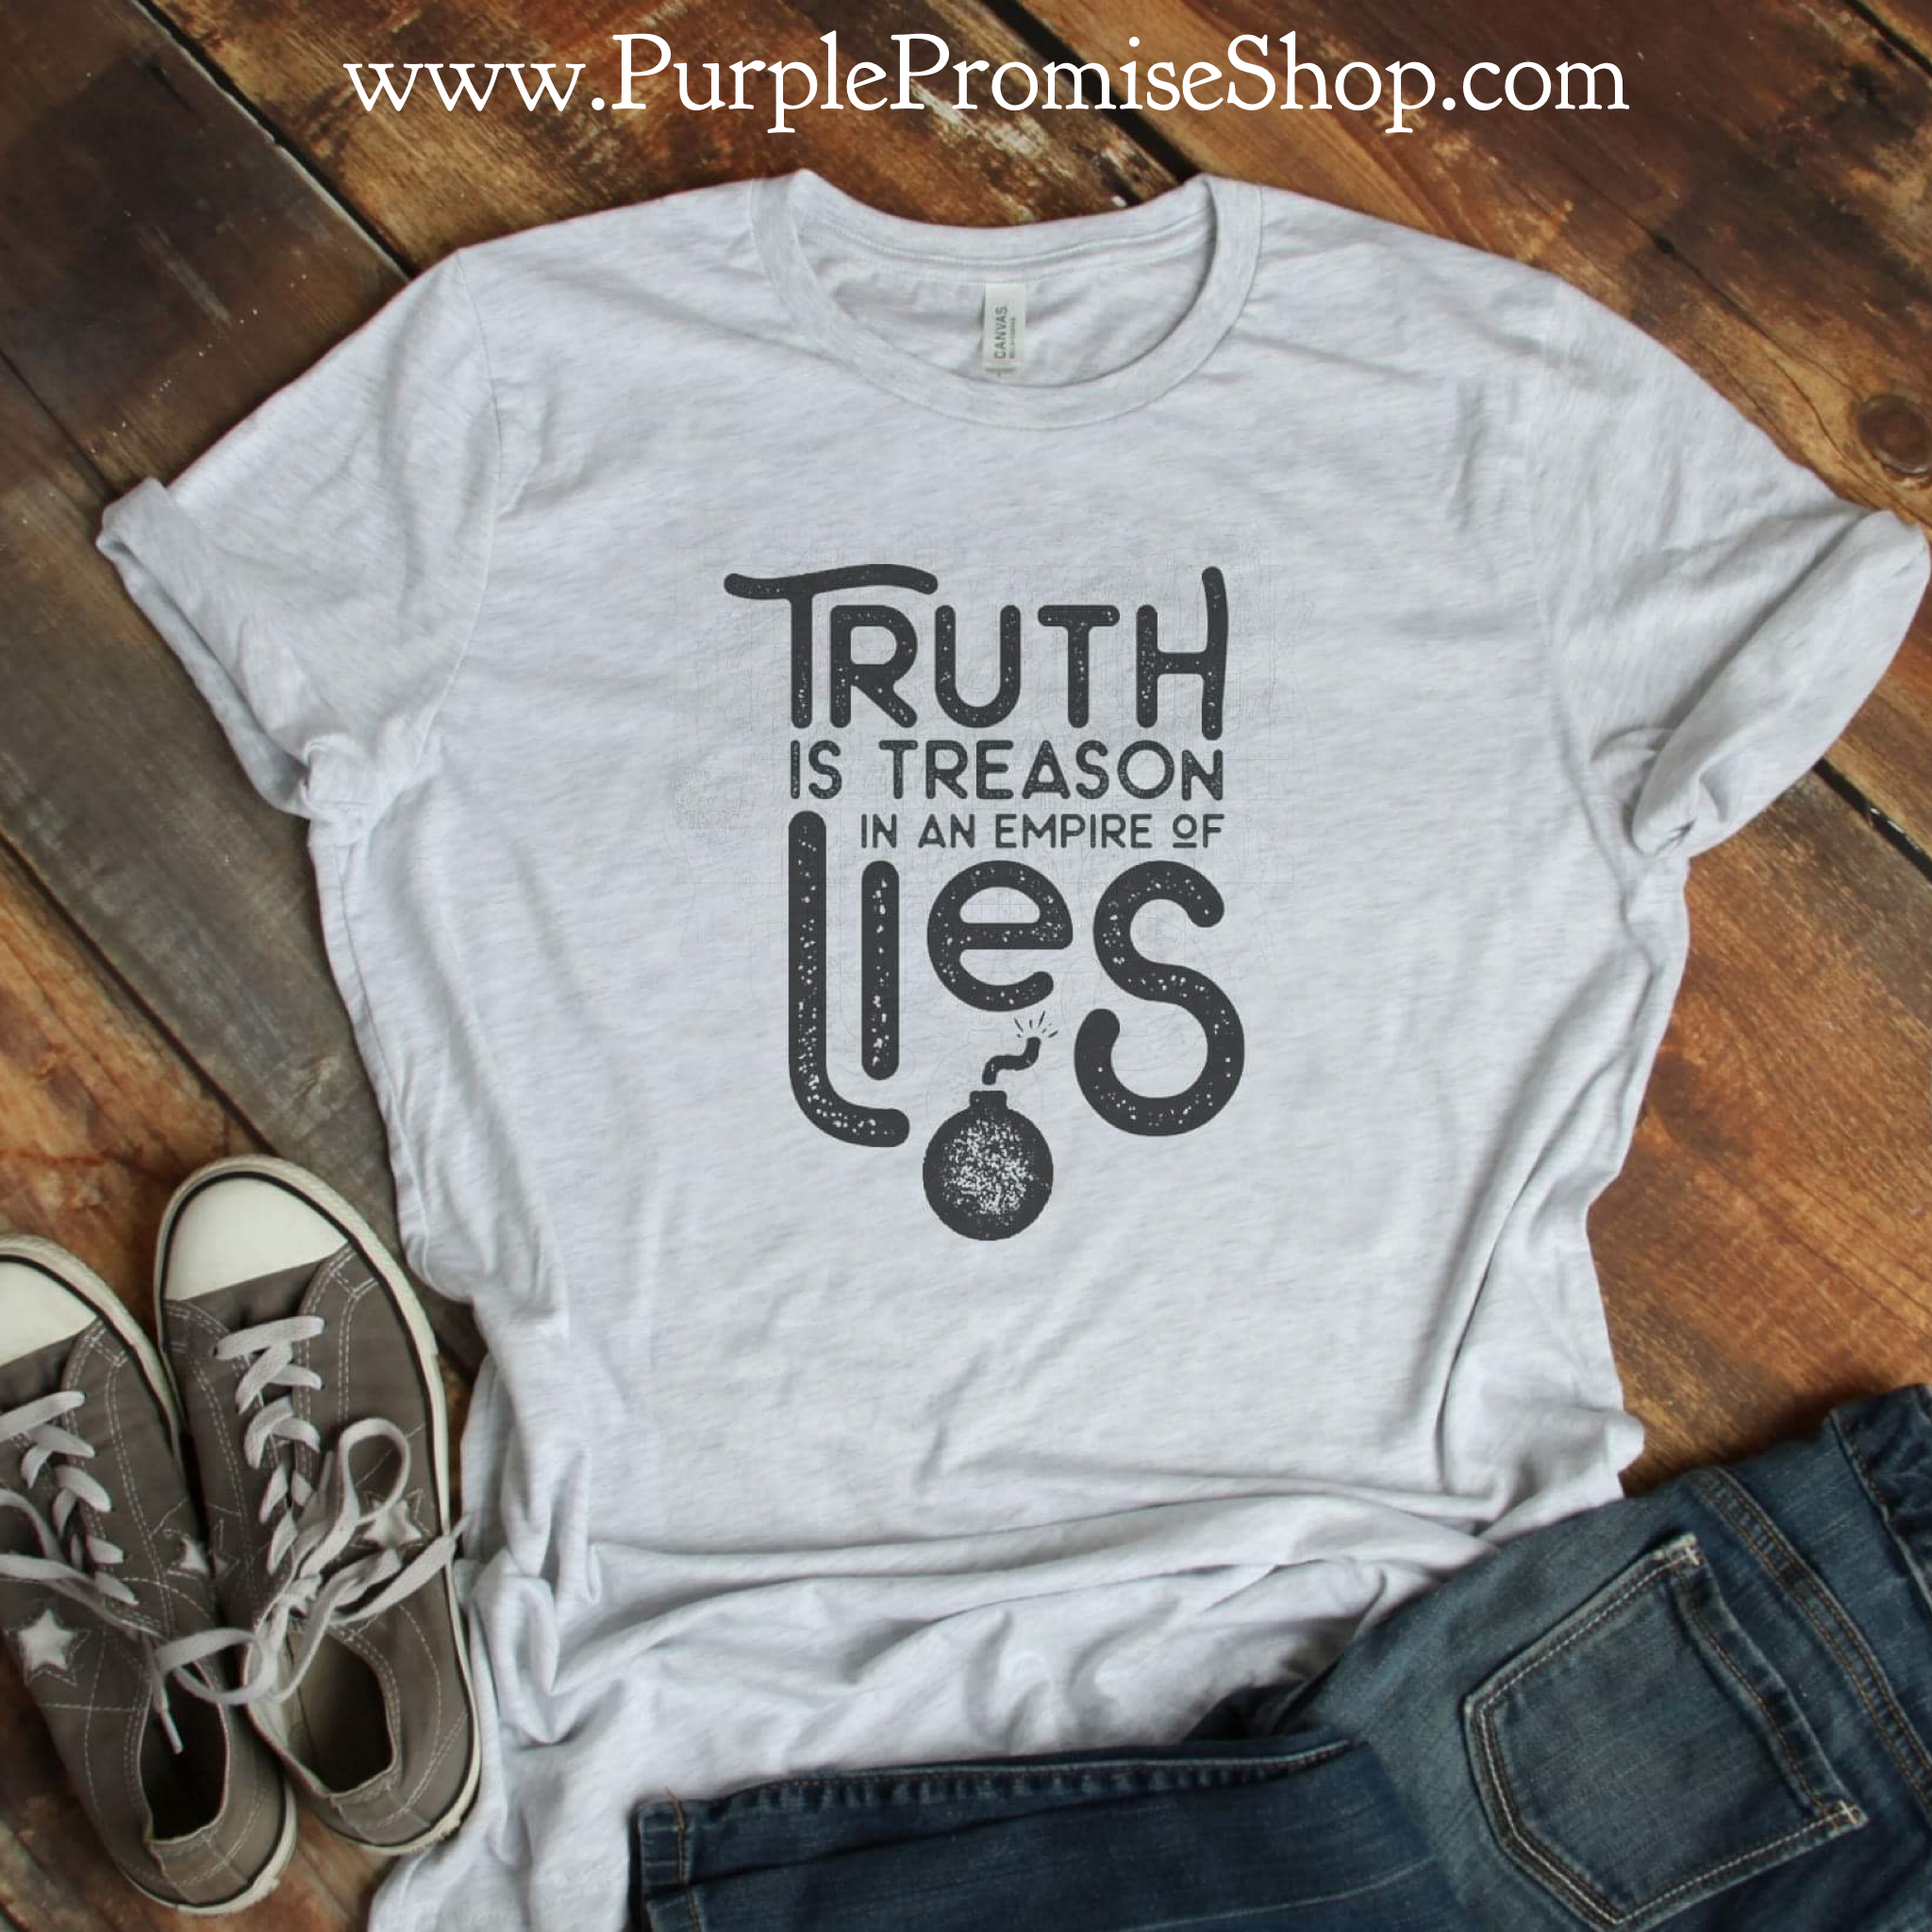 Truth is treason in an empire of lies - {ink}